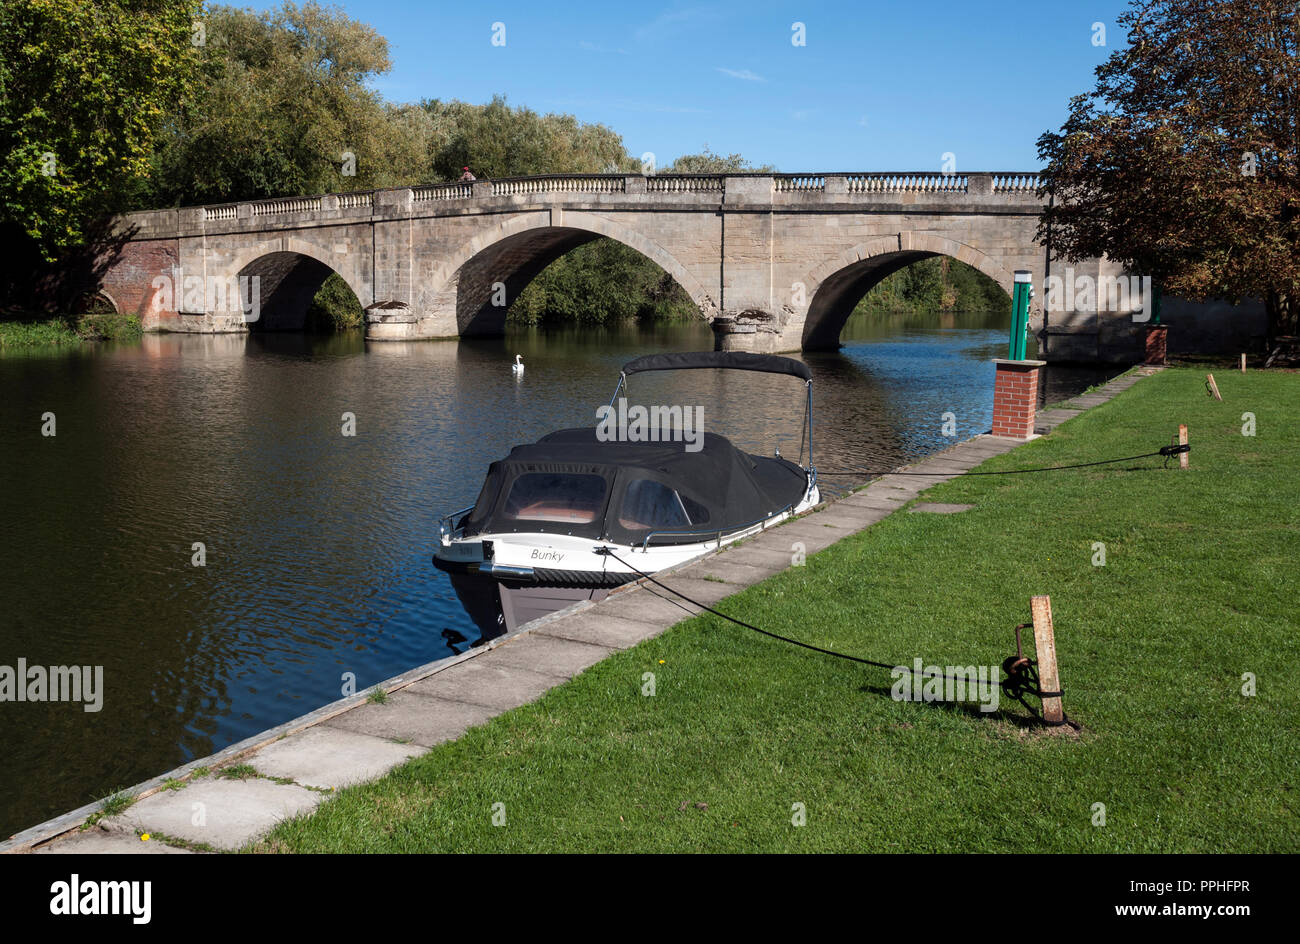 Shillingford bridge on the River Thames, Oxfordshire, England, UK - Stock Image